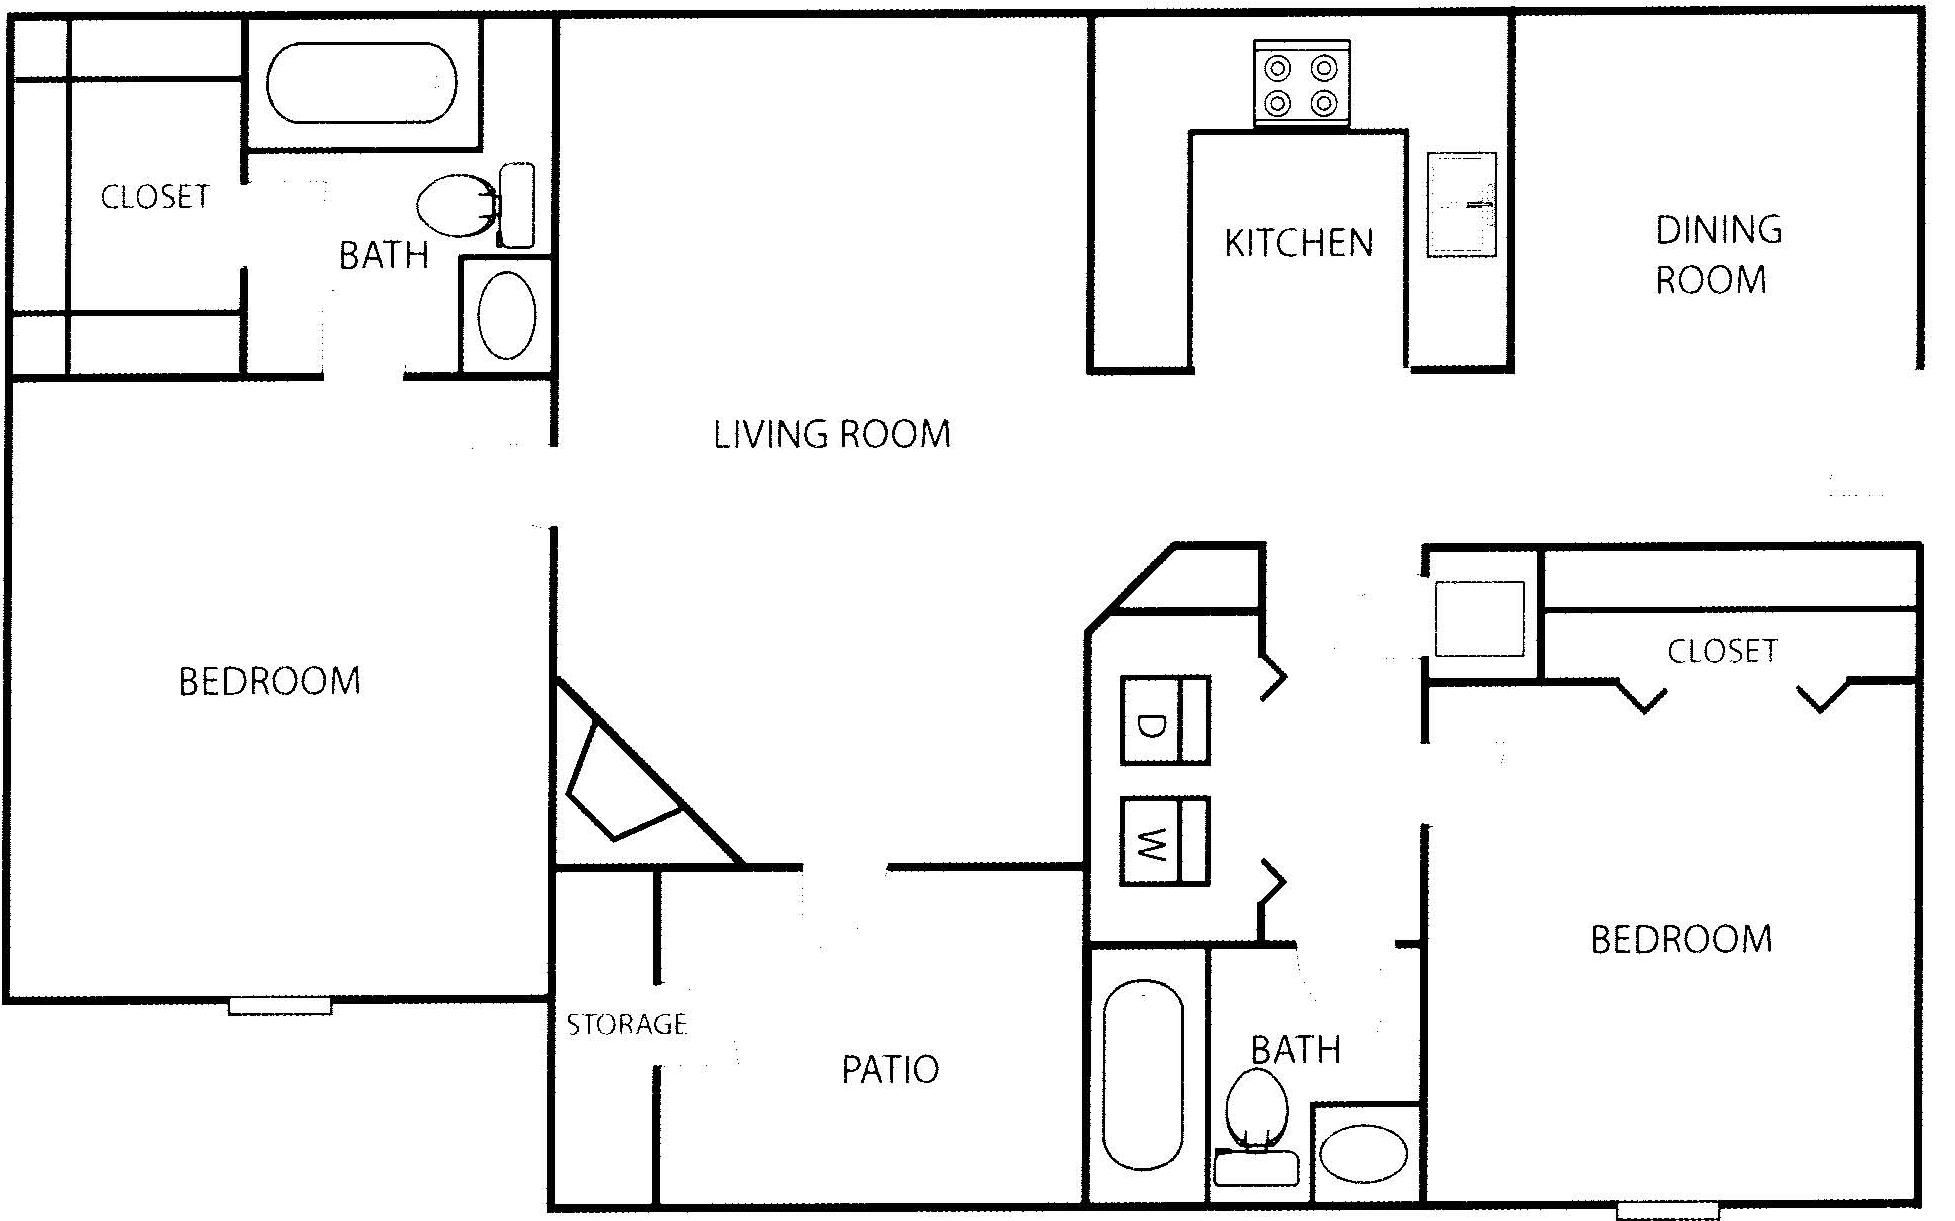 2 Bedroom Luxury Apartment Floor Plans (With images